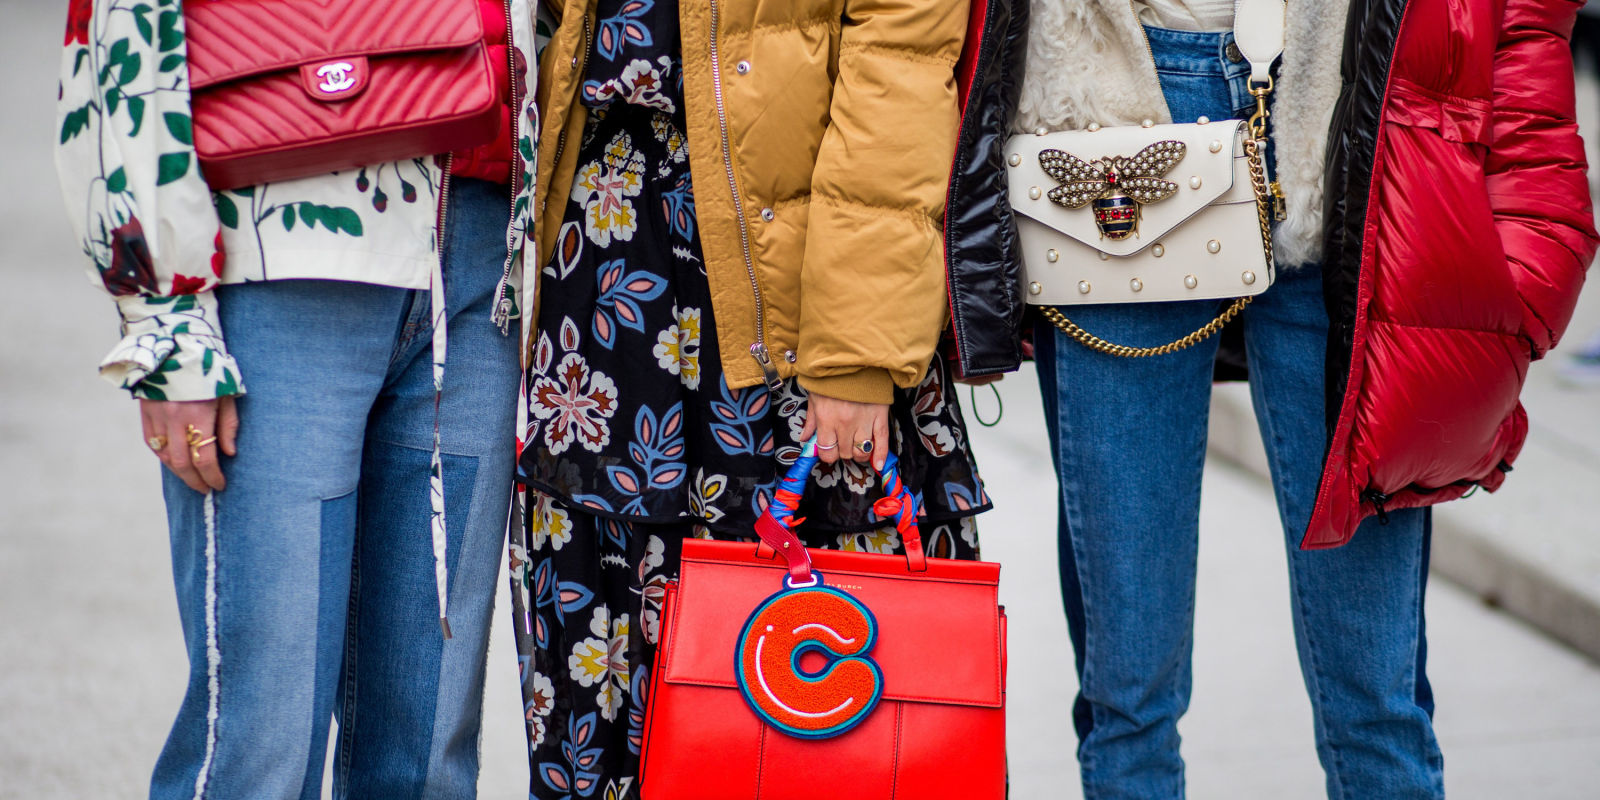 The Best Designer Bags to Buy Now and Sell Later